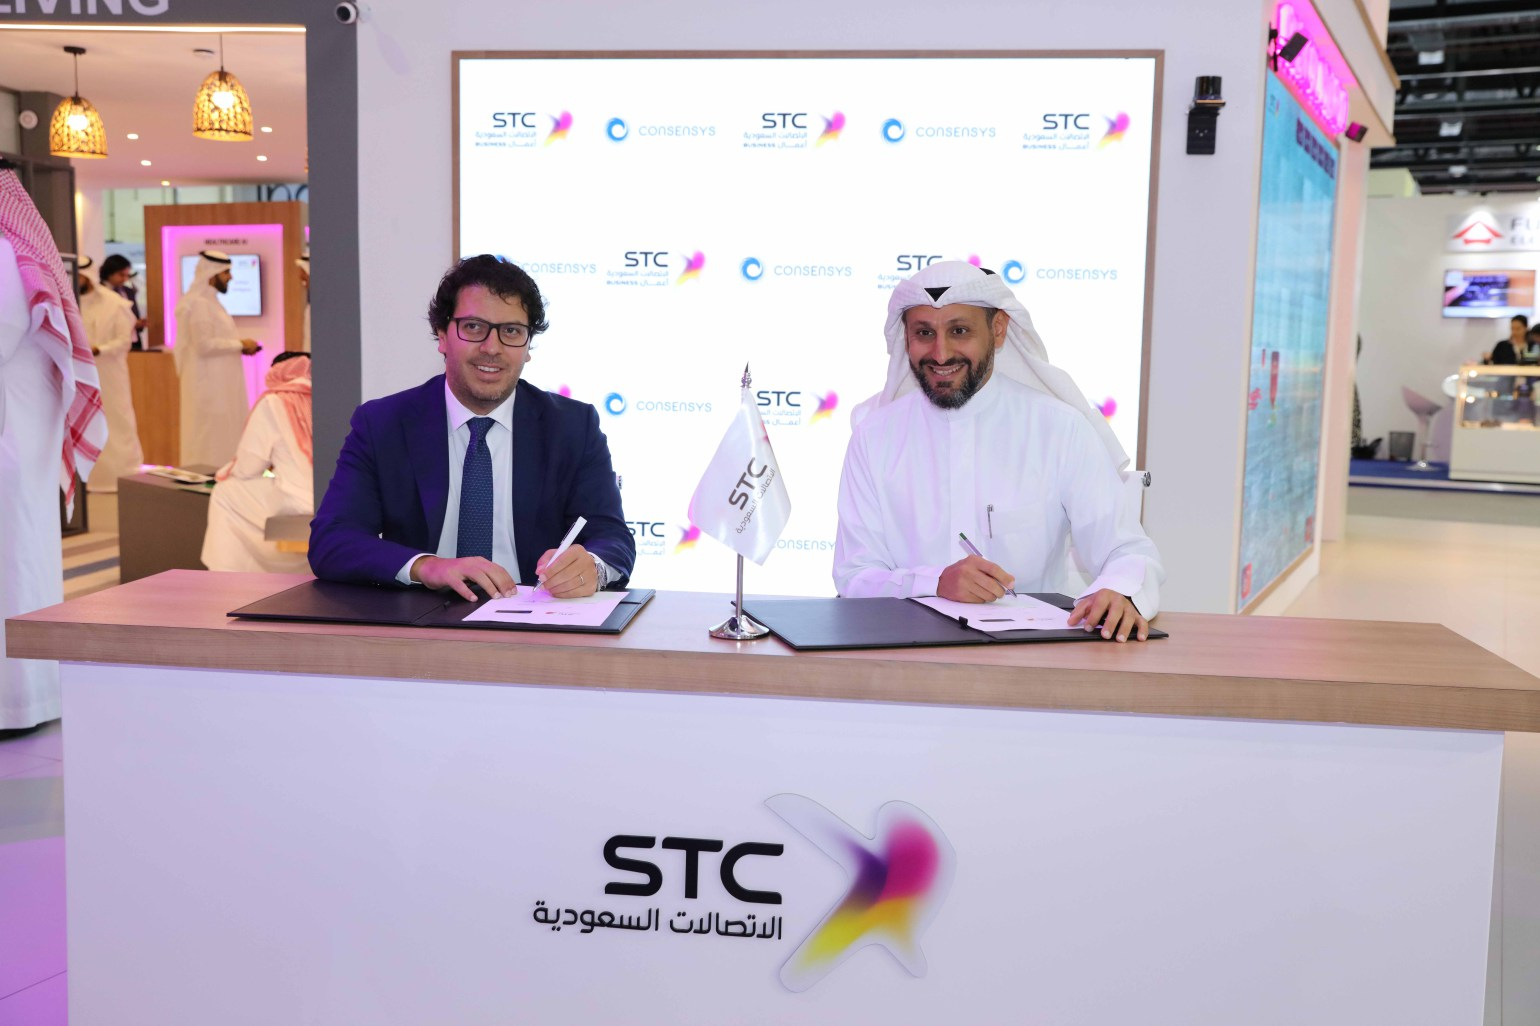 STC and ConsenSys come together to accelerate the blockchain movement in Saudi Arabia, here's how